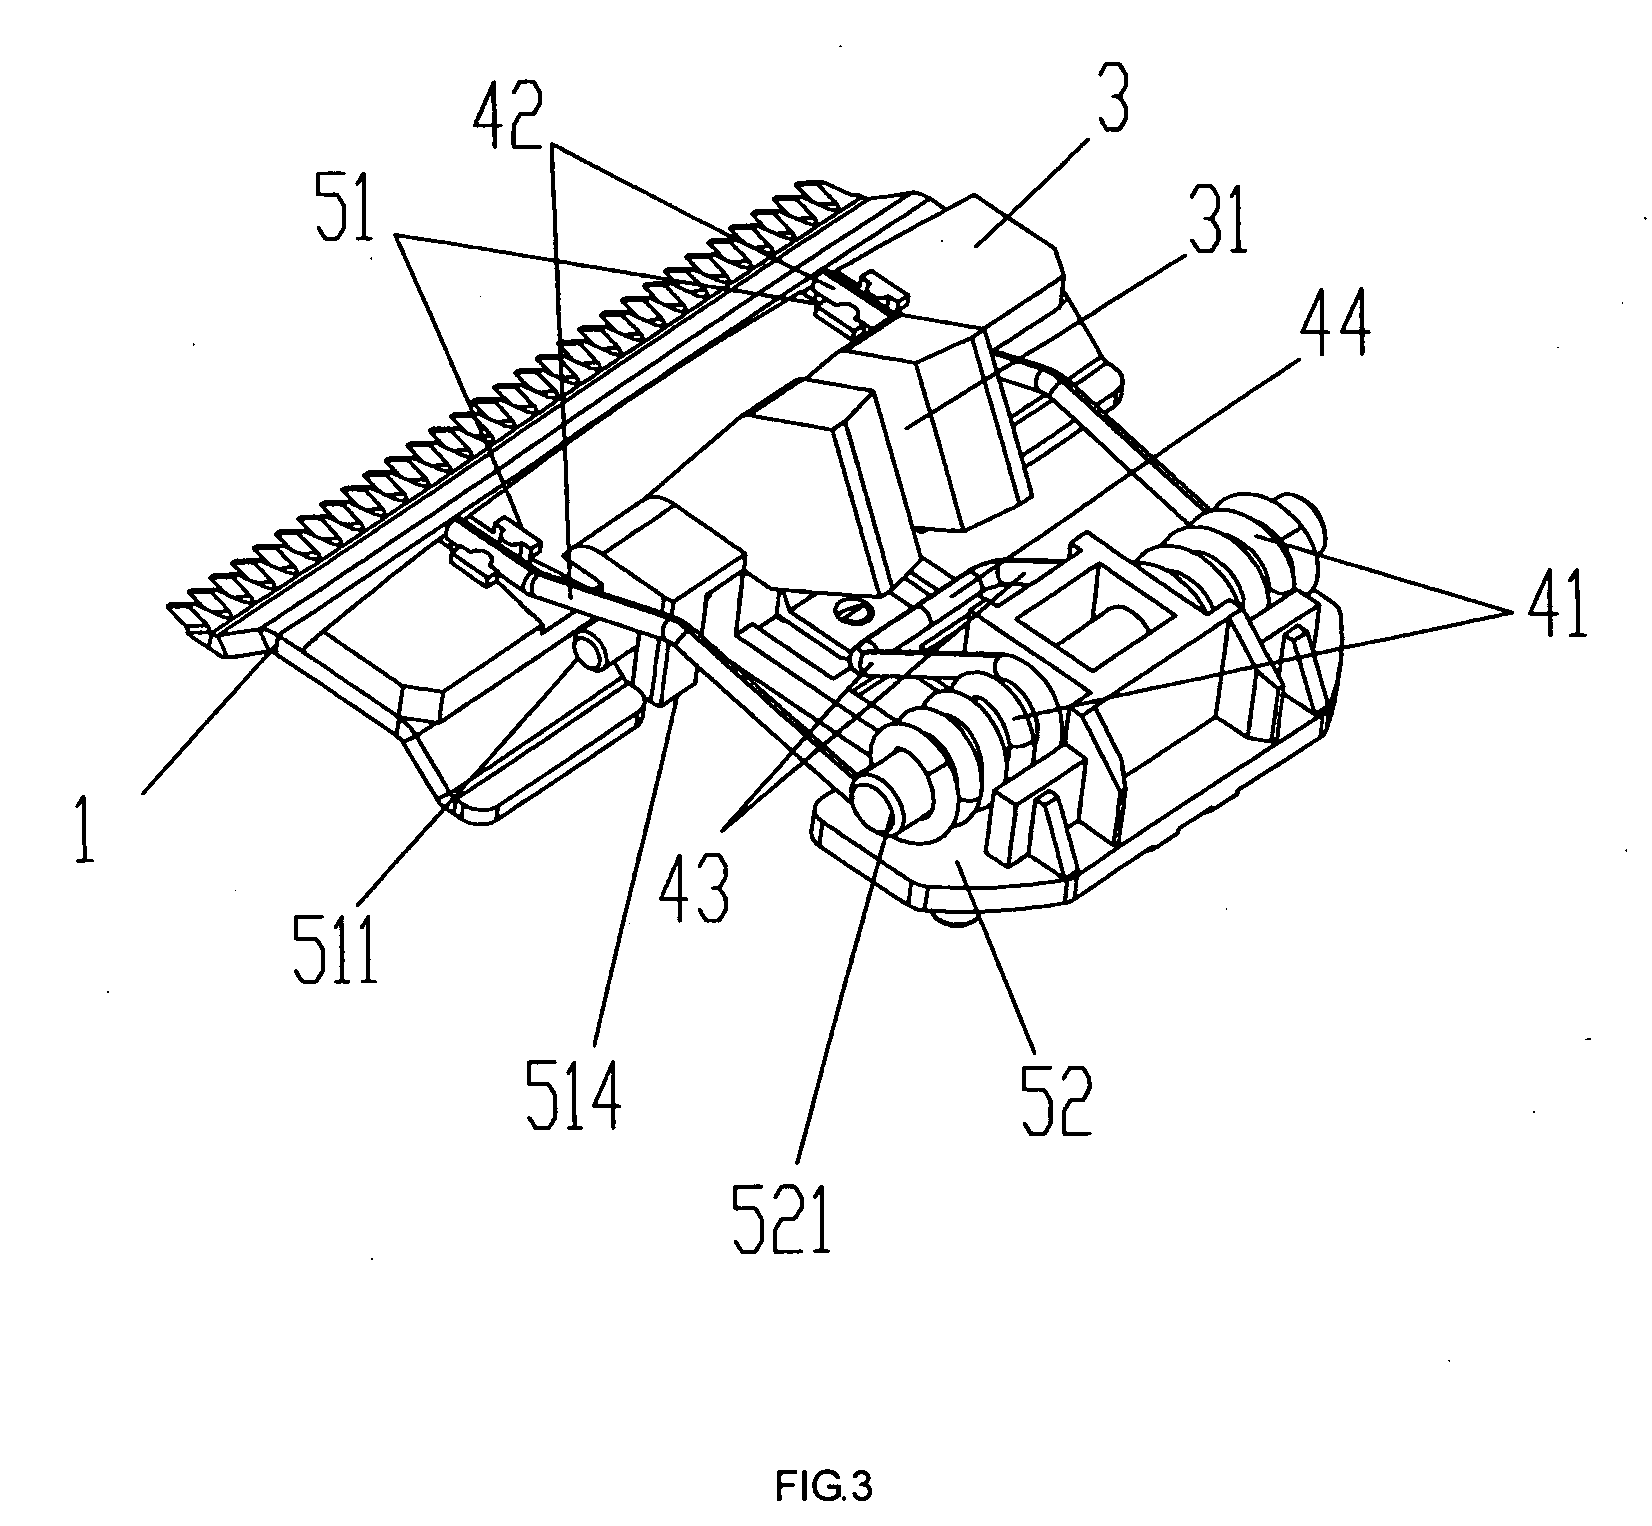 Conair Hair Clippers Hc408r User Guide Manualsonline Patent Drawing Us20090144988 Blade Driving Embly For An Adjule